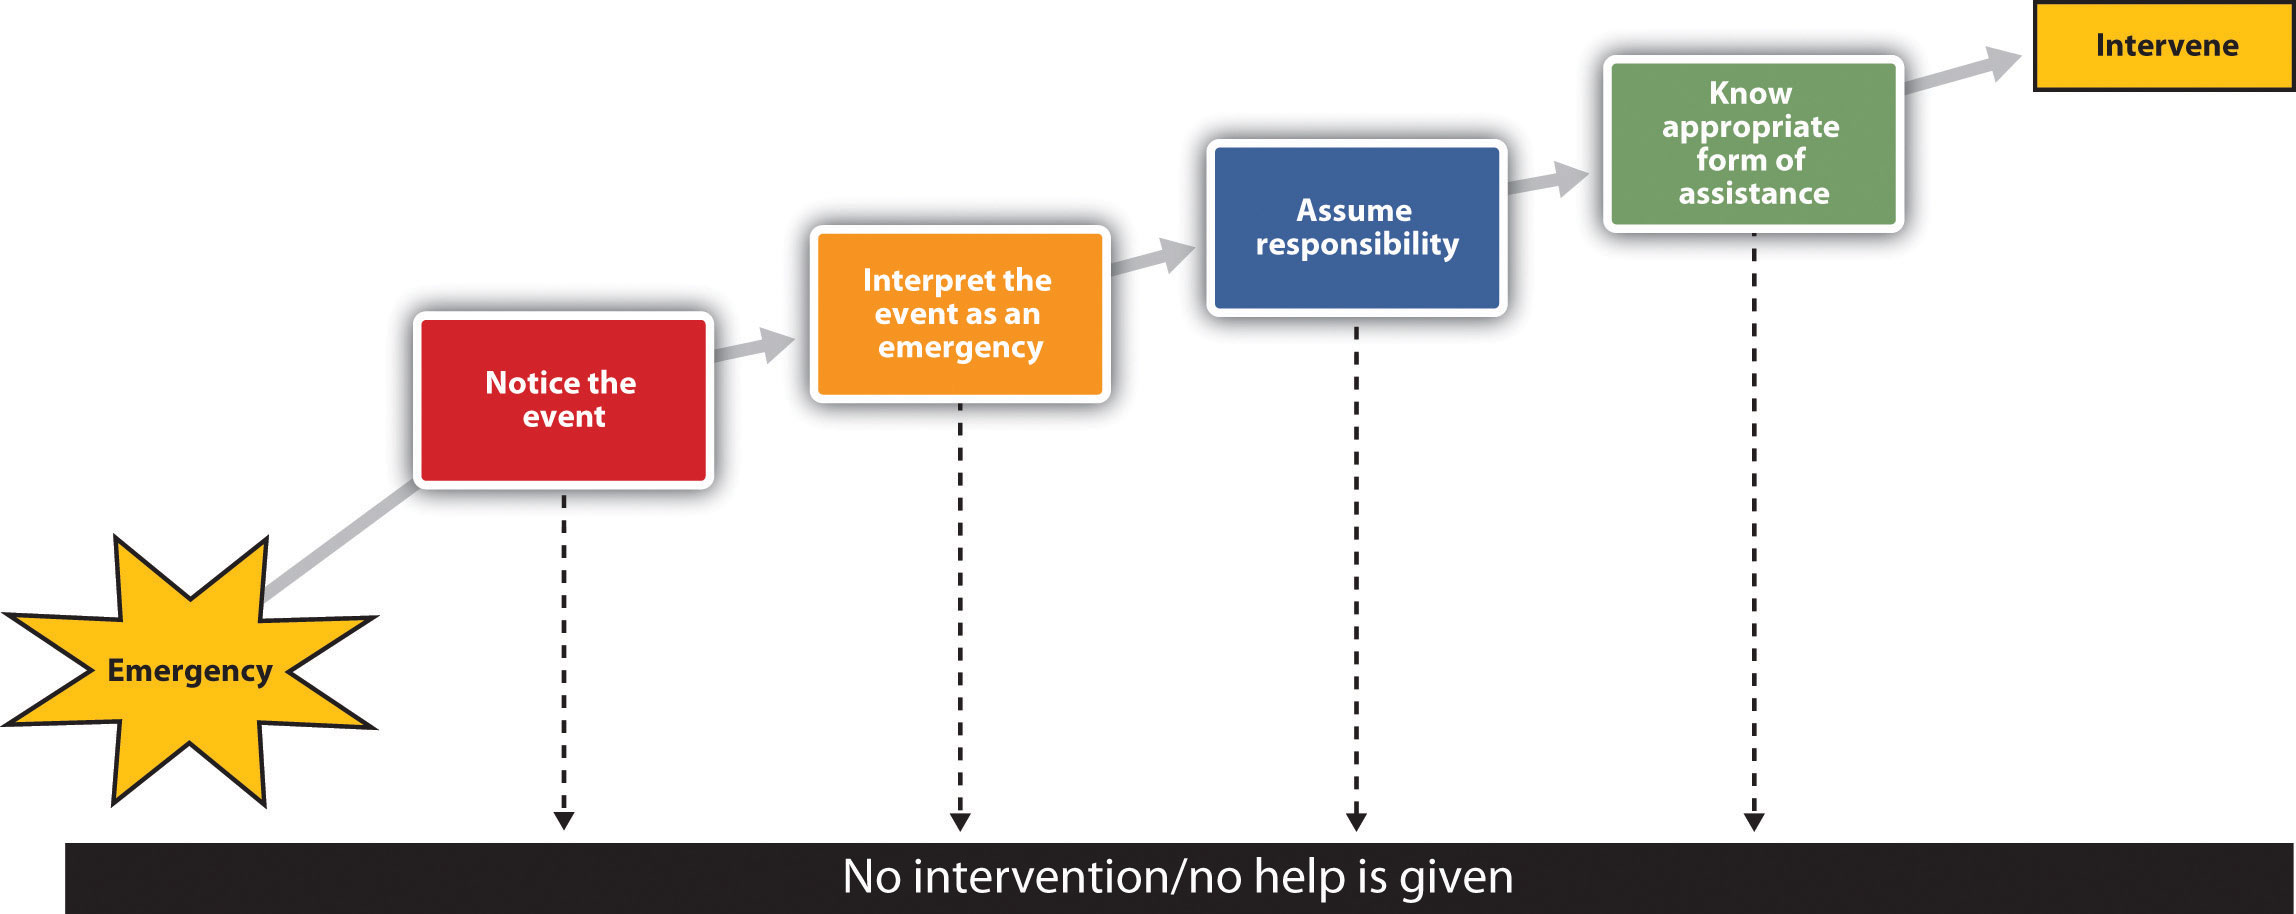 To better understand the processes of helping in an emergency, Latané and Darley developed a model of helping that took into consideration the important role of the social situation. Their model, which is shown in <a class=